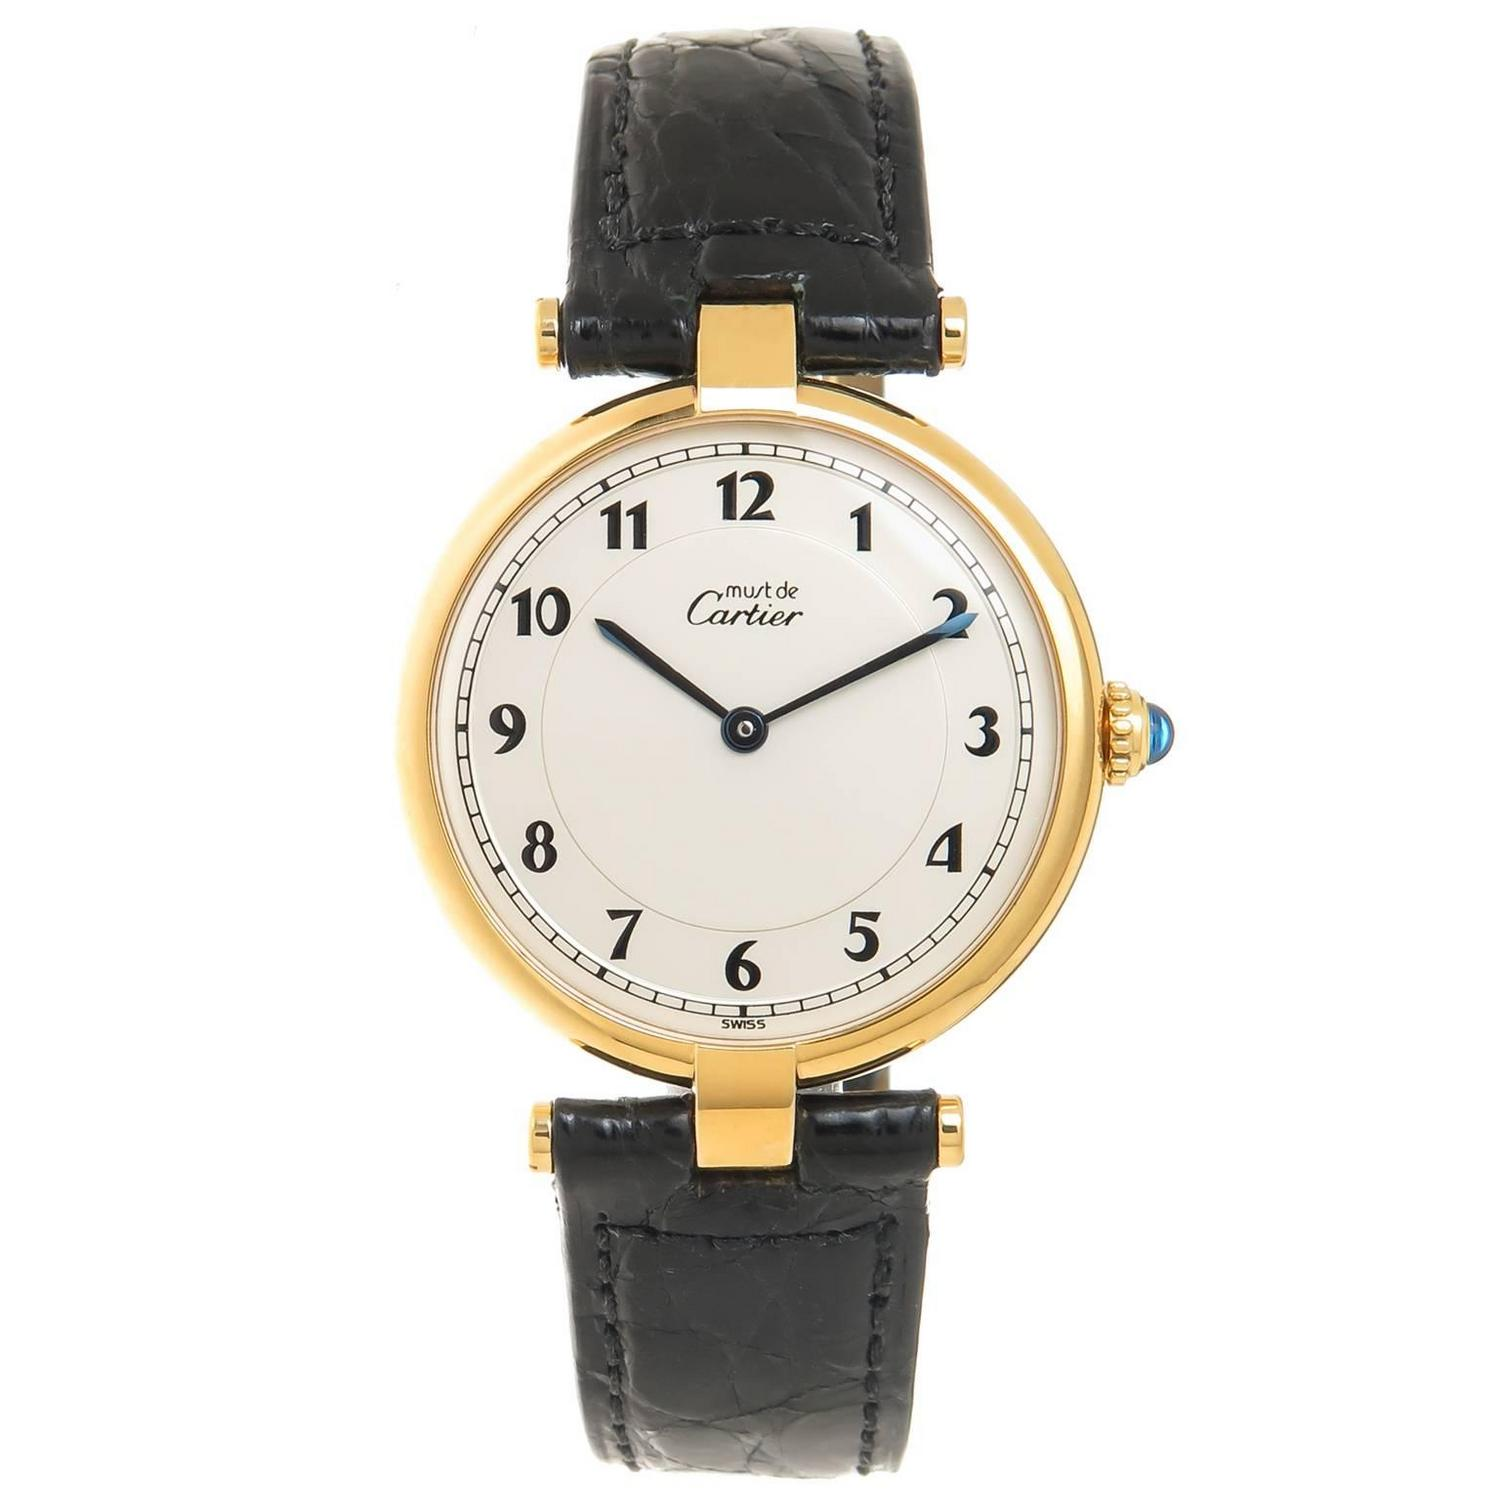 cartier large vermeil must de cartier vendome quartz wrist watch at 1stdibs. Black Bedroom Furniture Sets. Home Design Ideas